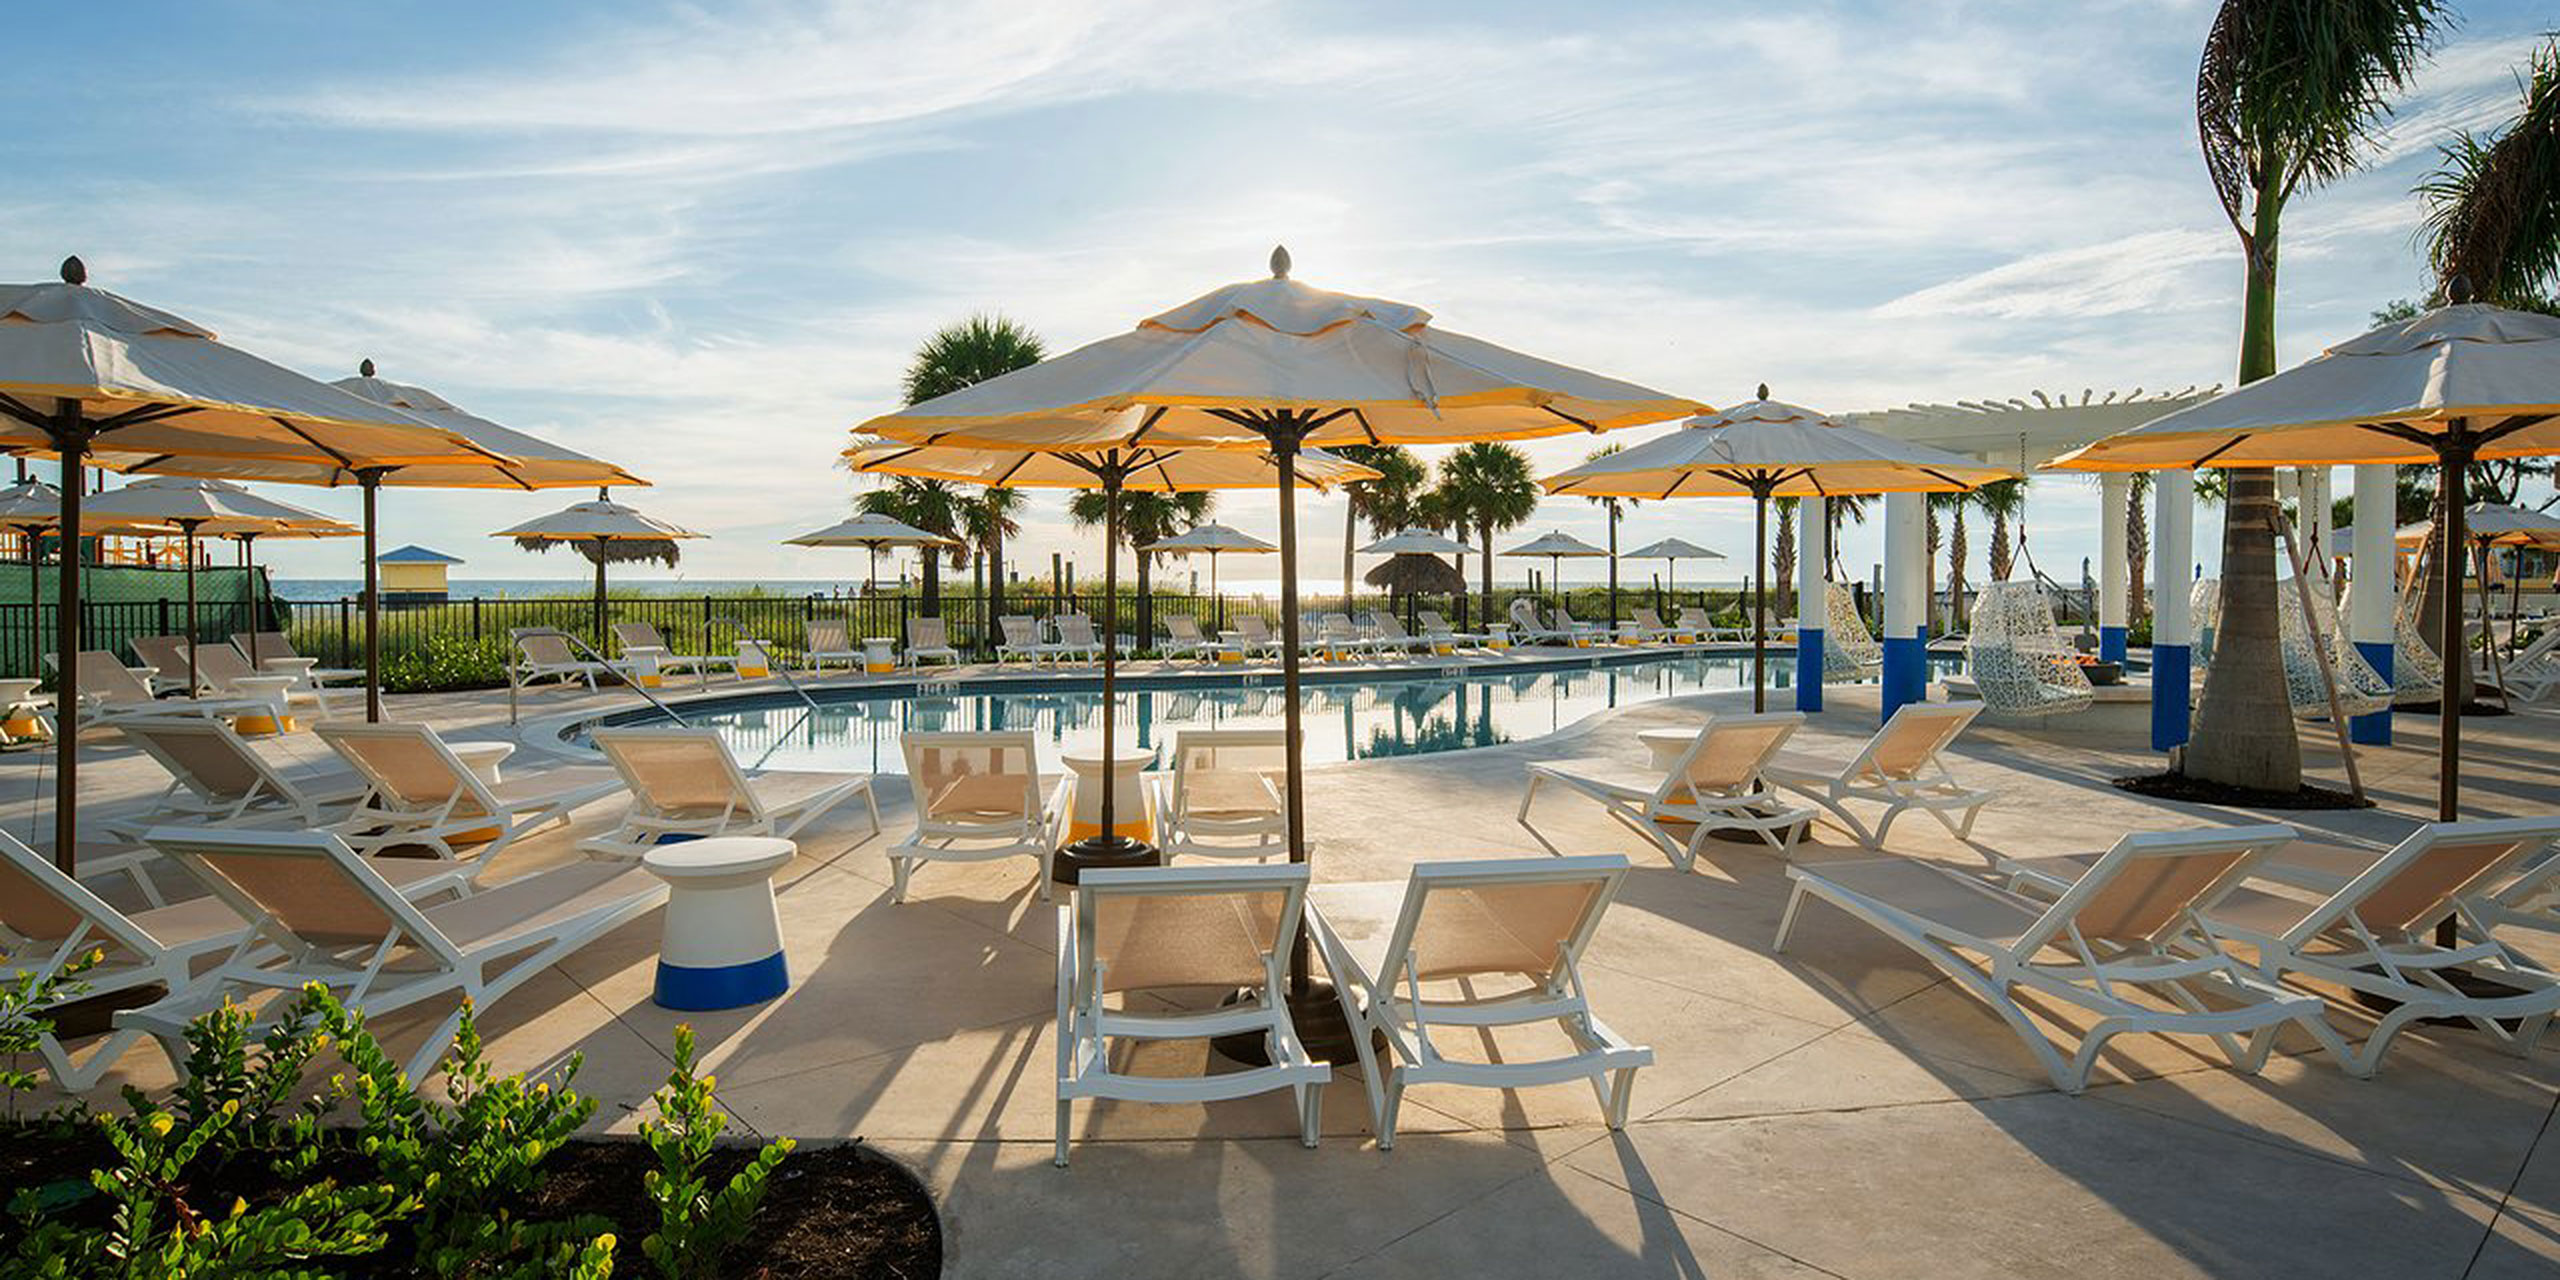 ddc58d508 5 Best All Inclusive Resorts in Florida